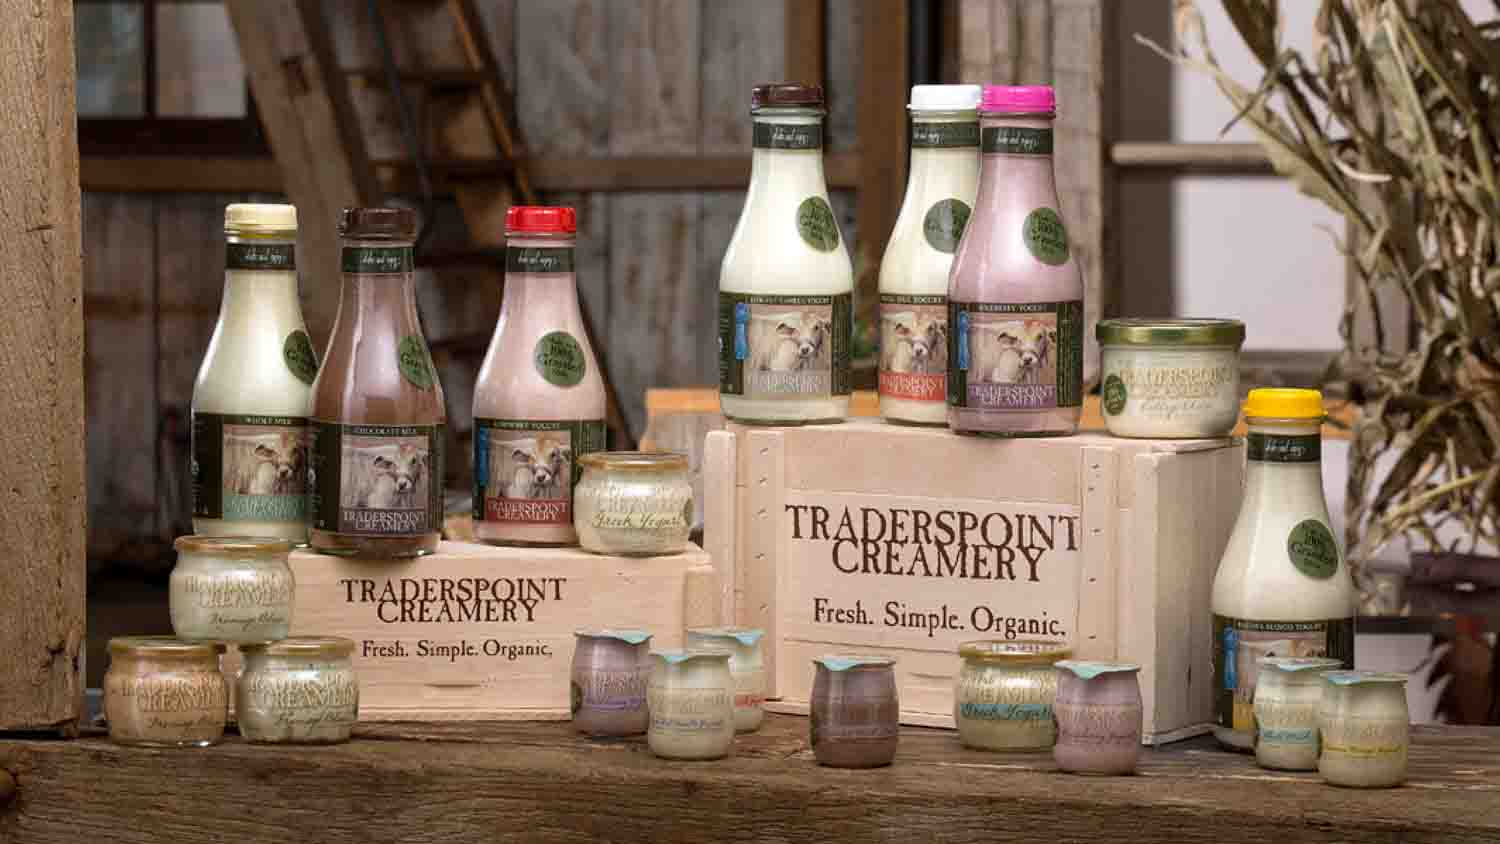 Traders point creamery 6